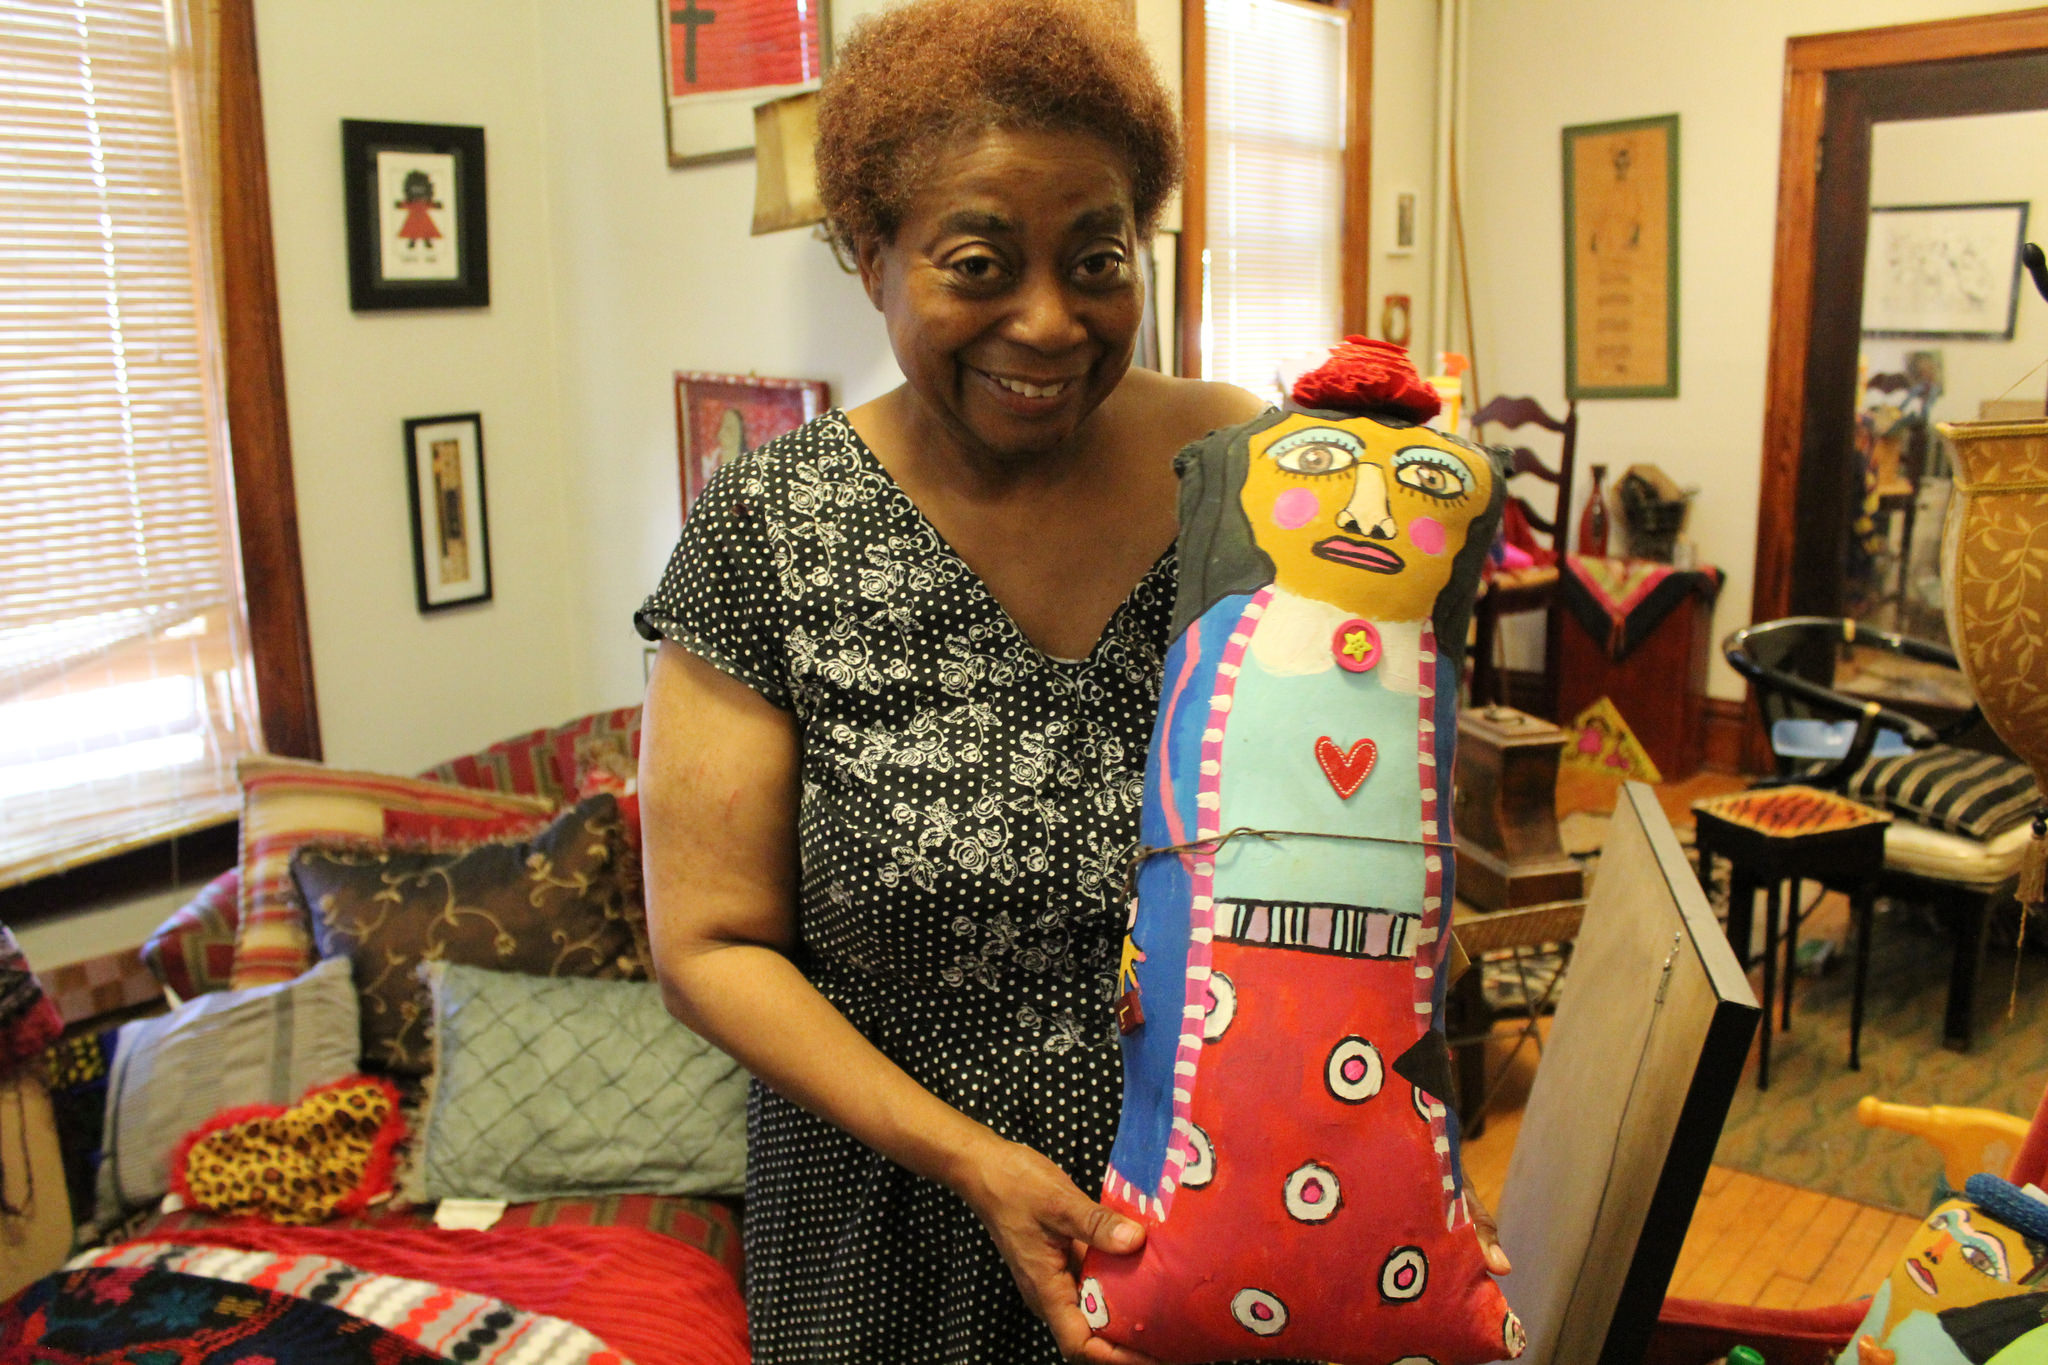 Artist Della Wells displays one of her handmade dolls in her home. (Photo by Emmy A. Yates)